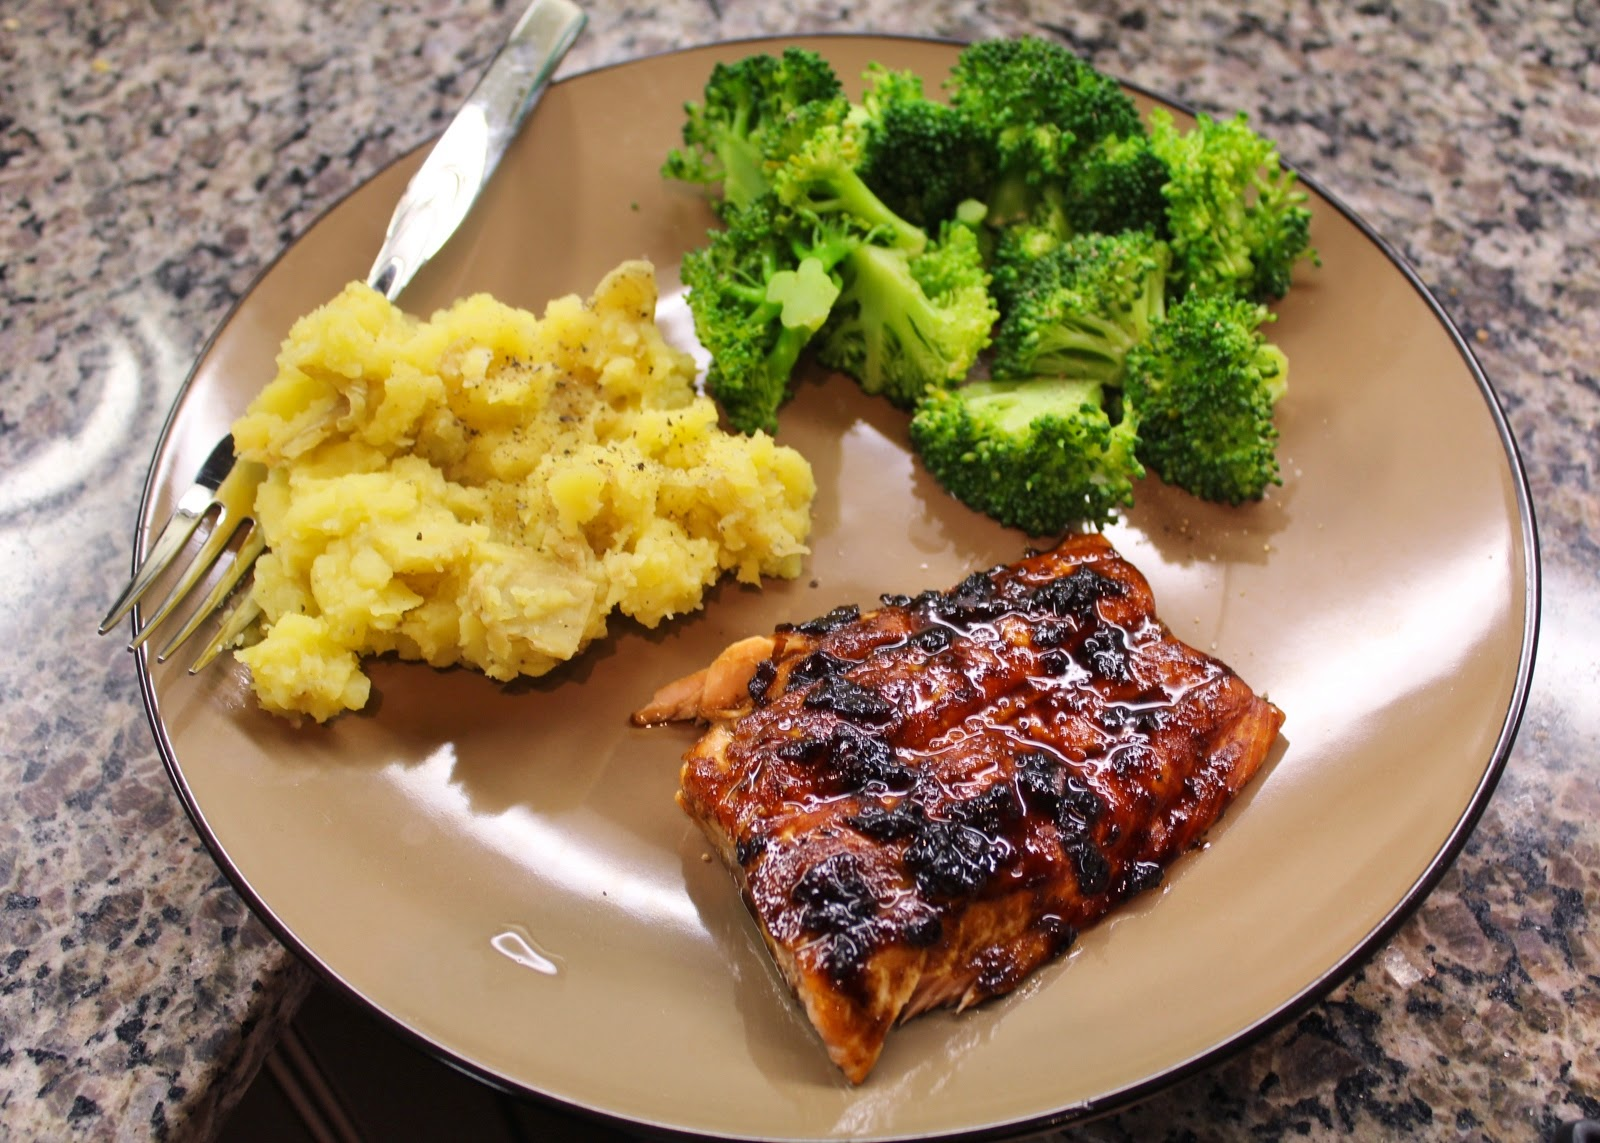 Salmon, mashed potatoes, and broccoli